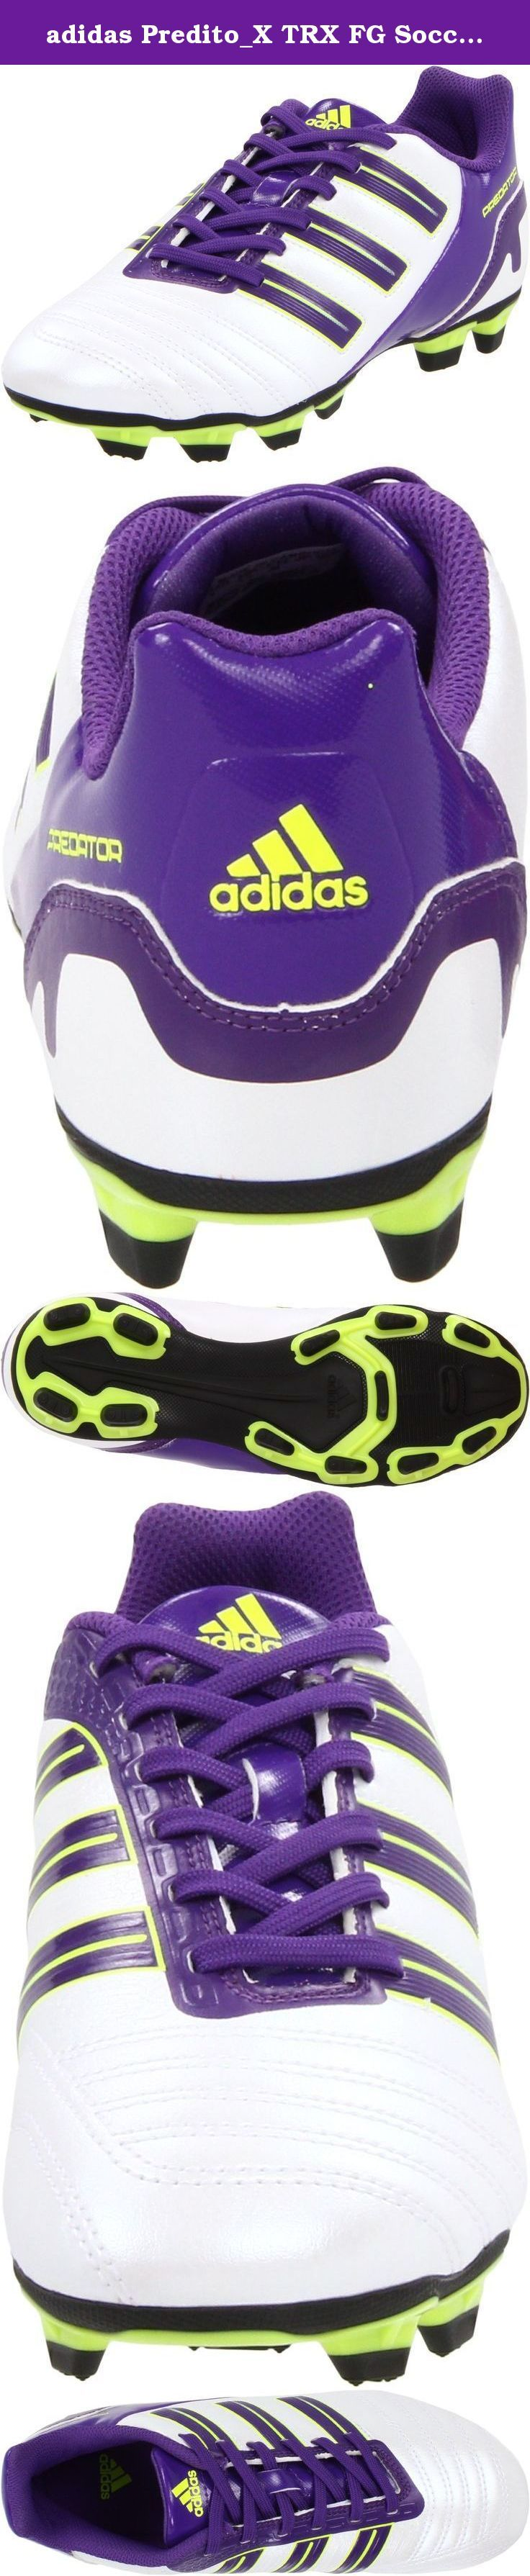 adidas Predito_X TRX FG Soccer Cleat (Toddler/Little Kid/Big Kid),Predator Running White/Sharp Purple/Electricity,2 M US Little Kid. Every touch is one step closer to football mastery in these durable, comfortable boots. Bring big value, great looks and adidas quality to your firm ground game. EVA insole for comfort. TRAXION FG for optimum grip and comfort on firm natural grass surfaces. TPU outsole. TRAXION.